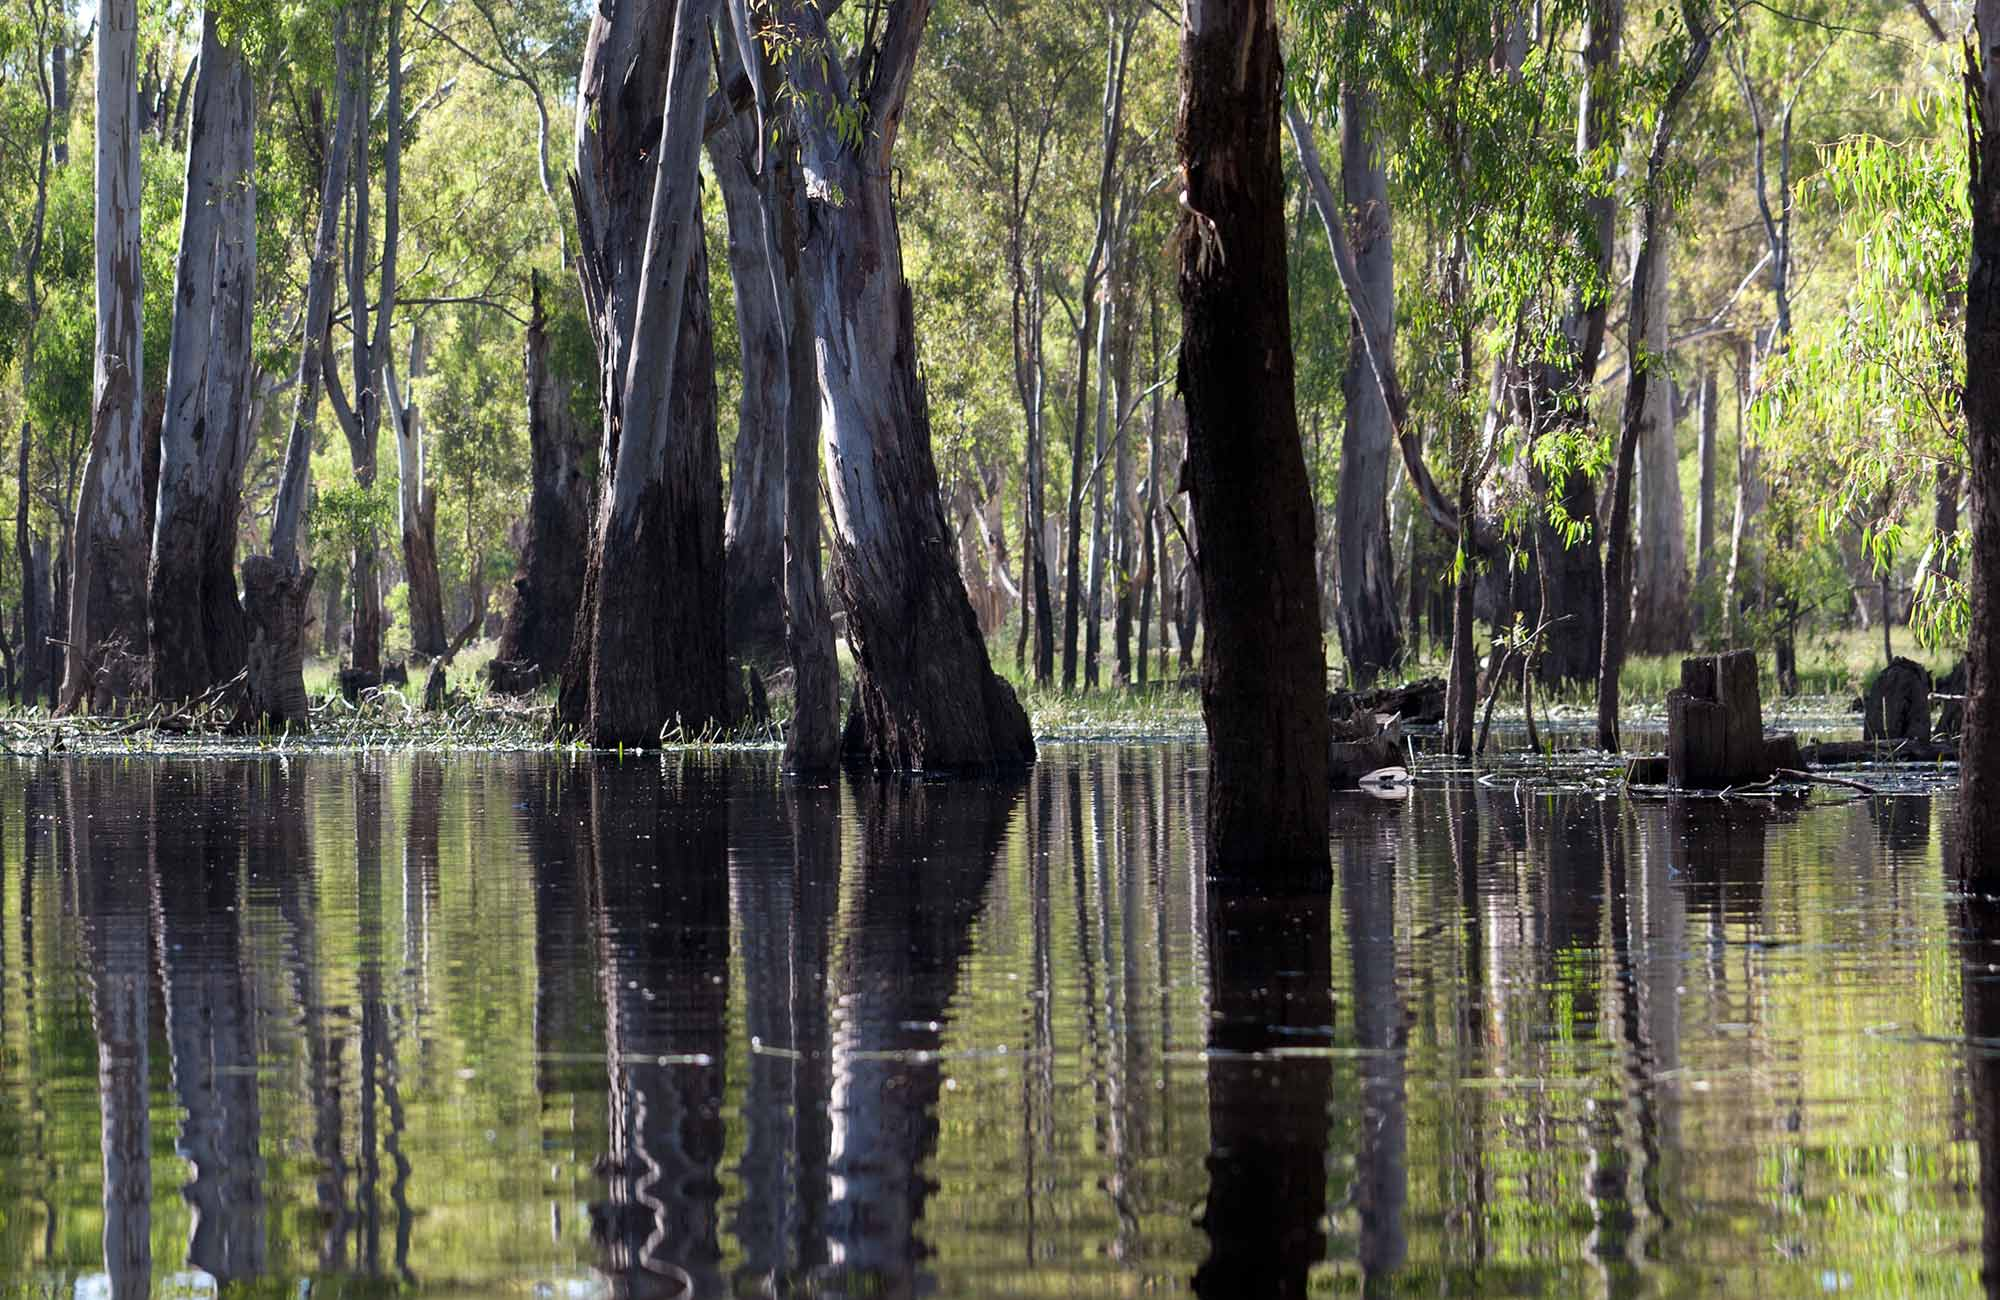 Gum trees reflecting in the river. Photo:David Finnegan